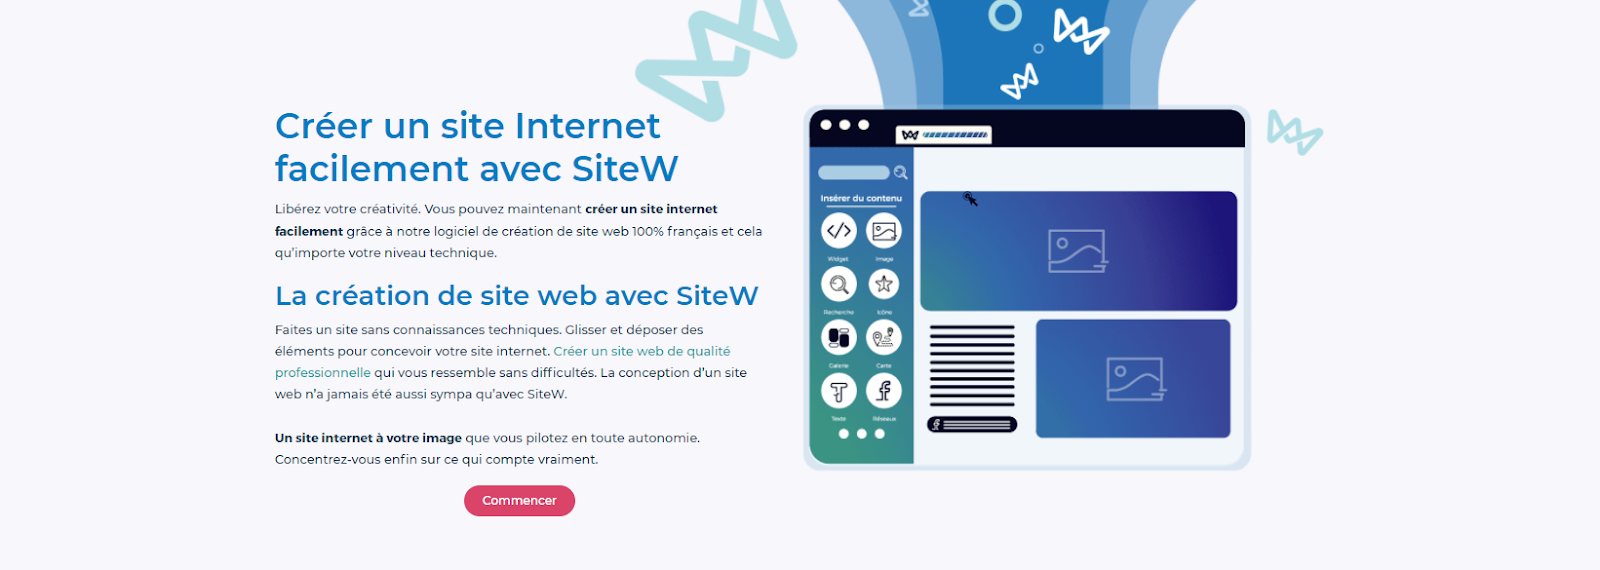 page accueil sitew